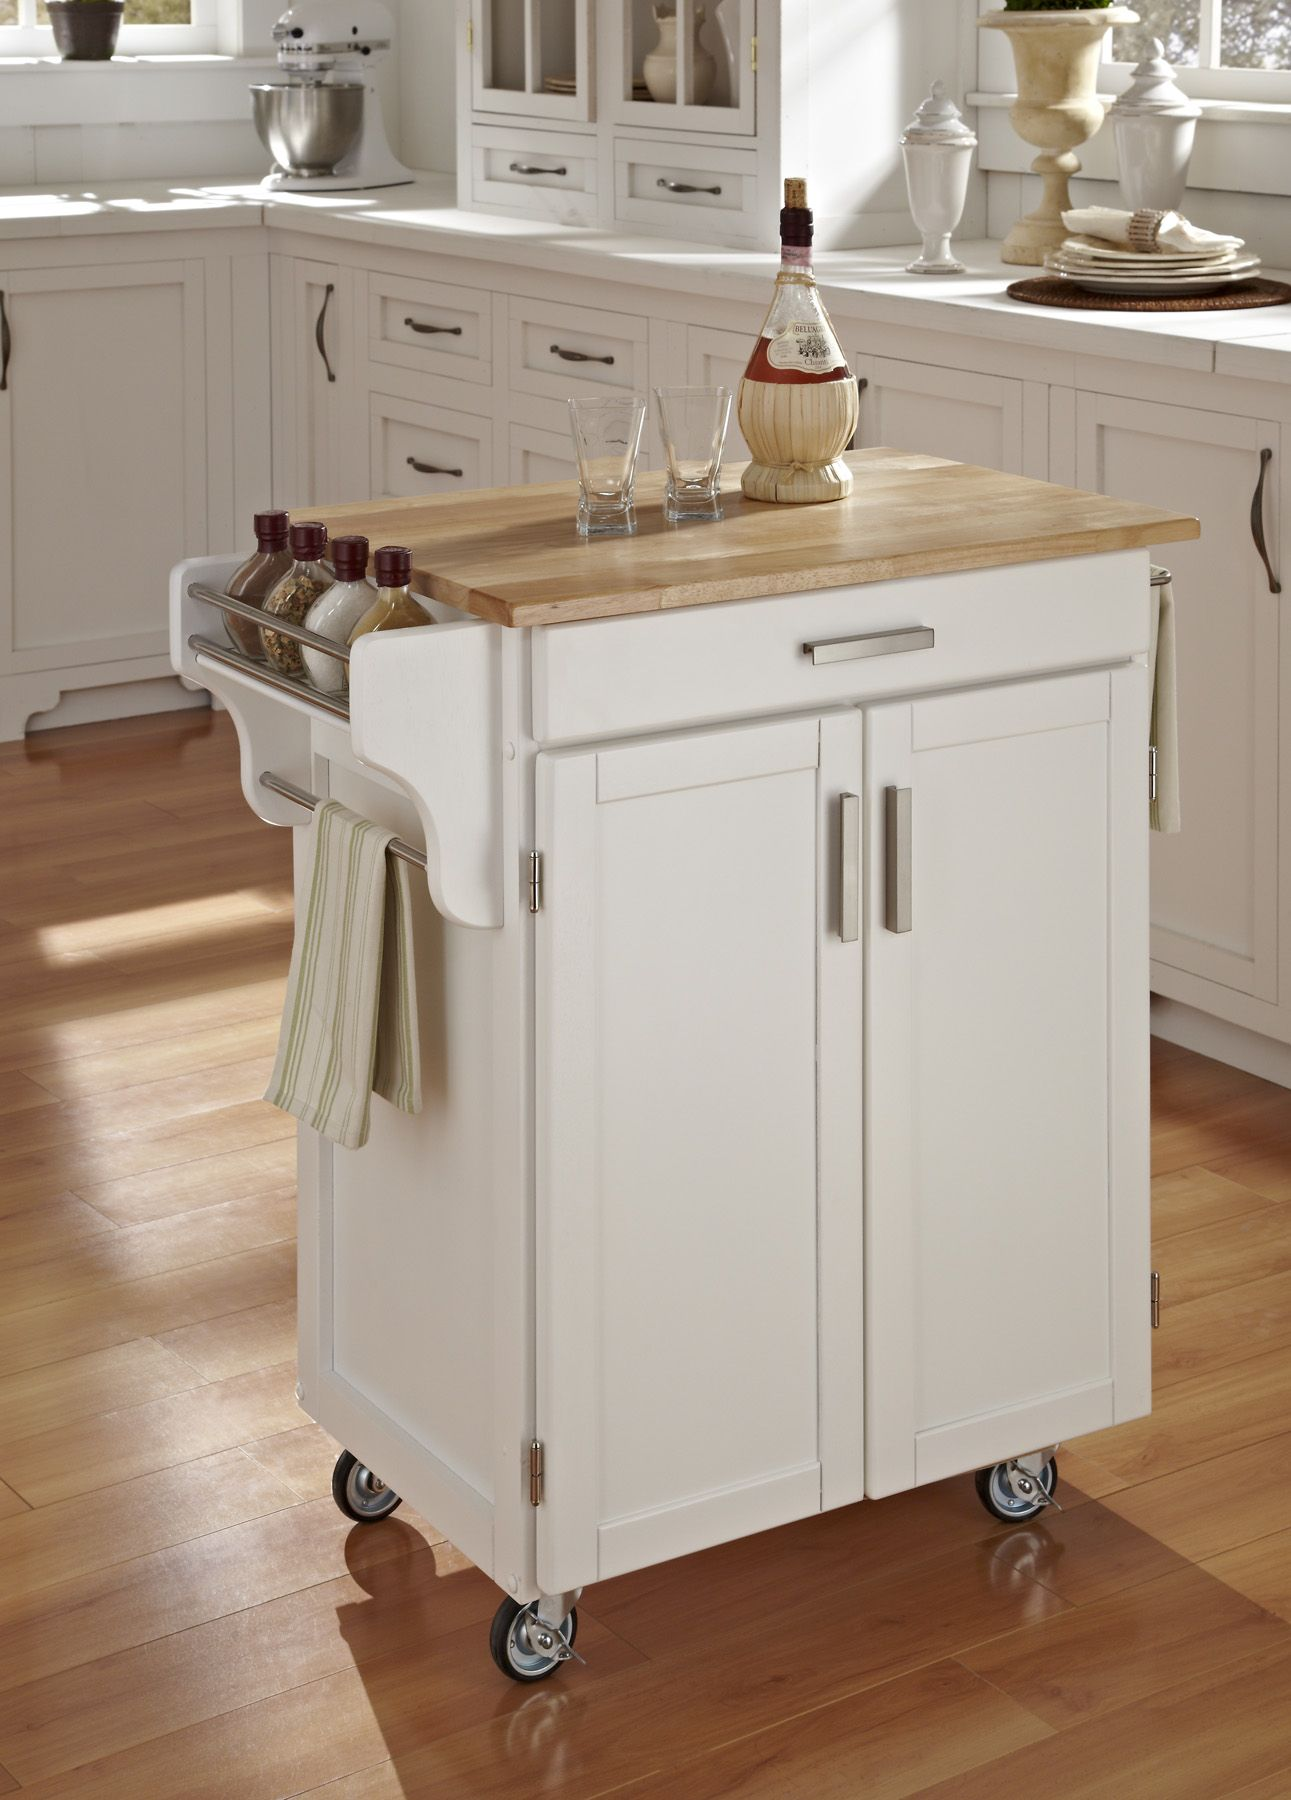 Home Styles Create-A-Cart Cuisine Cart - White Finish with Wood Top